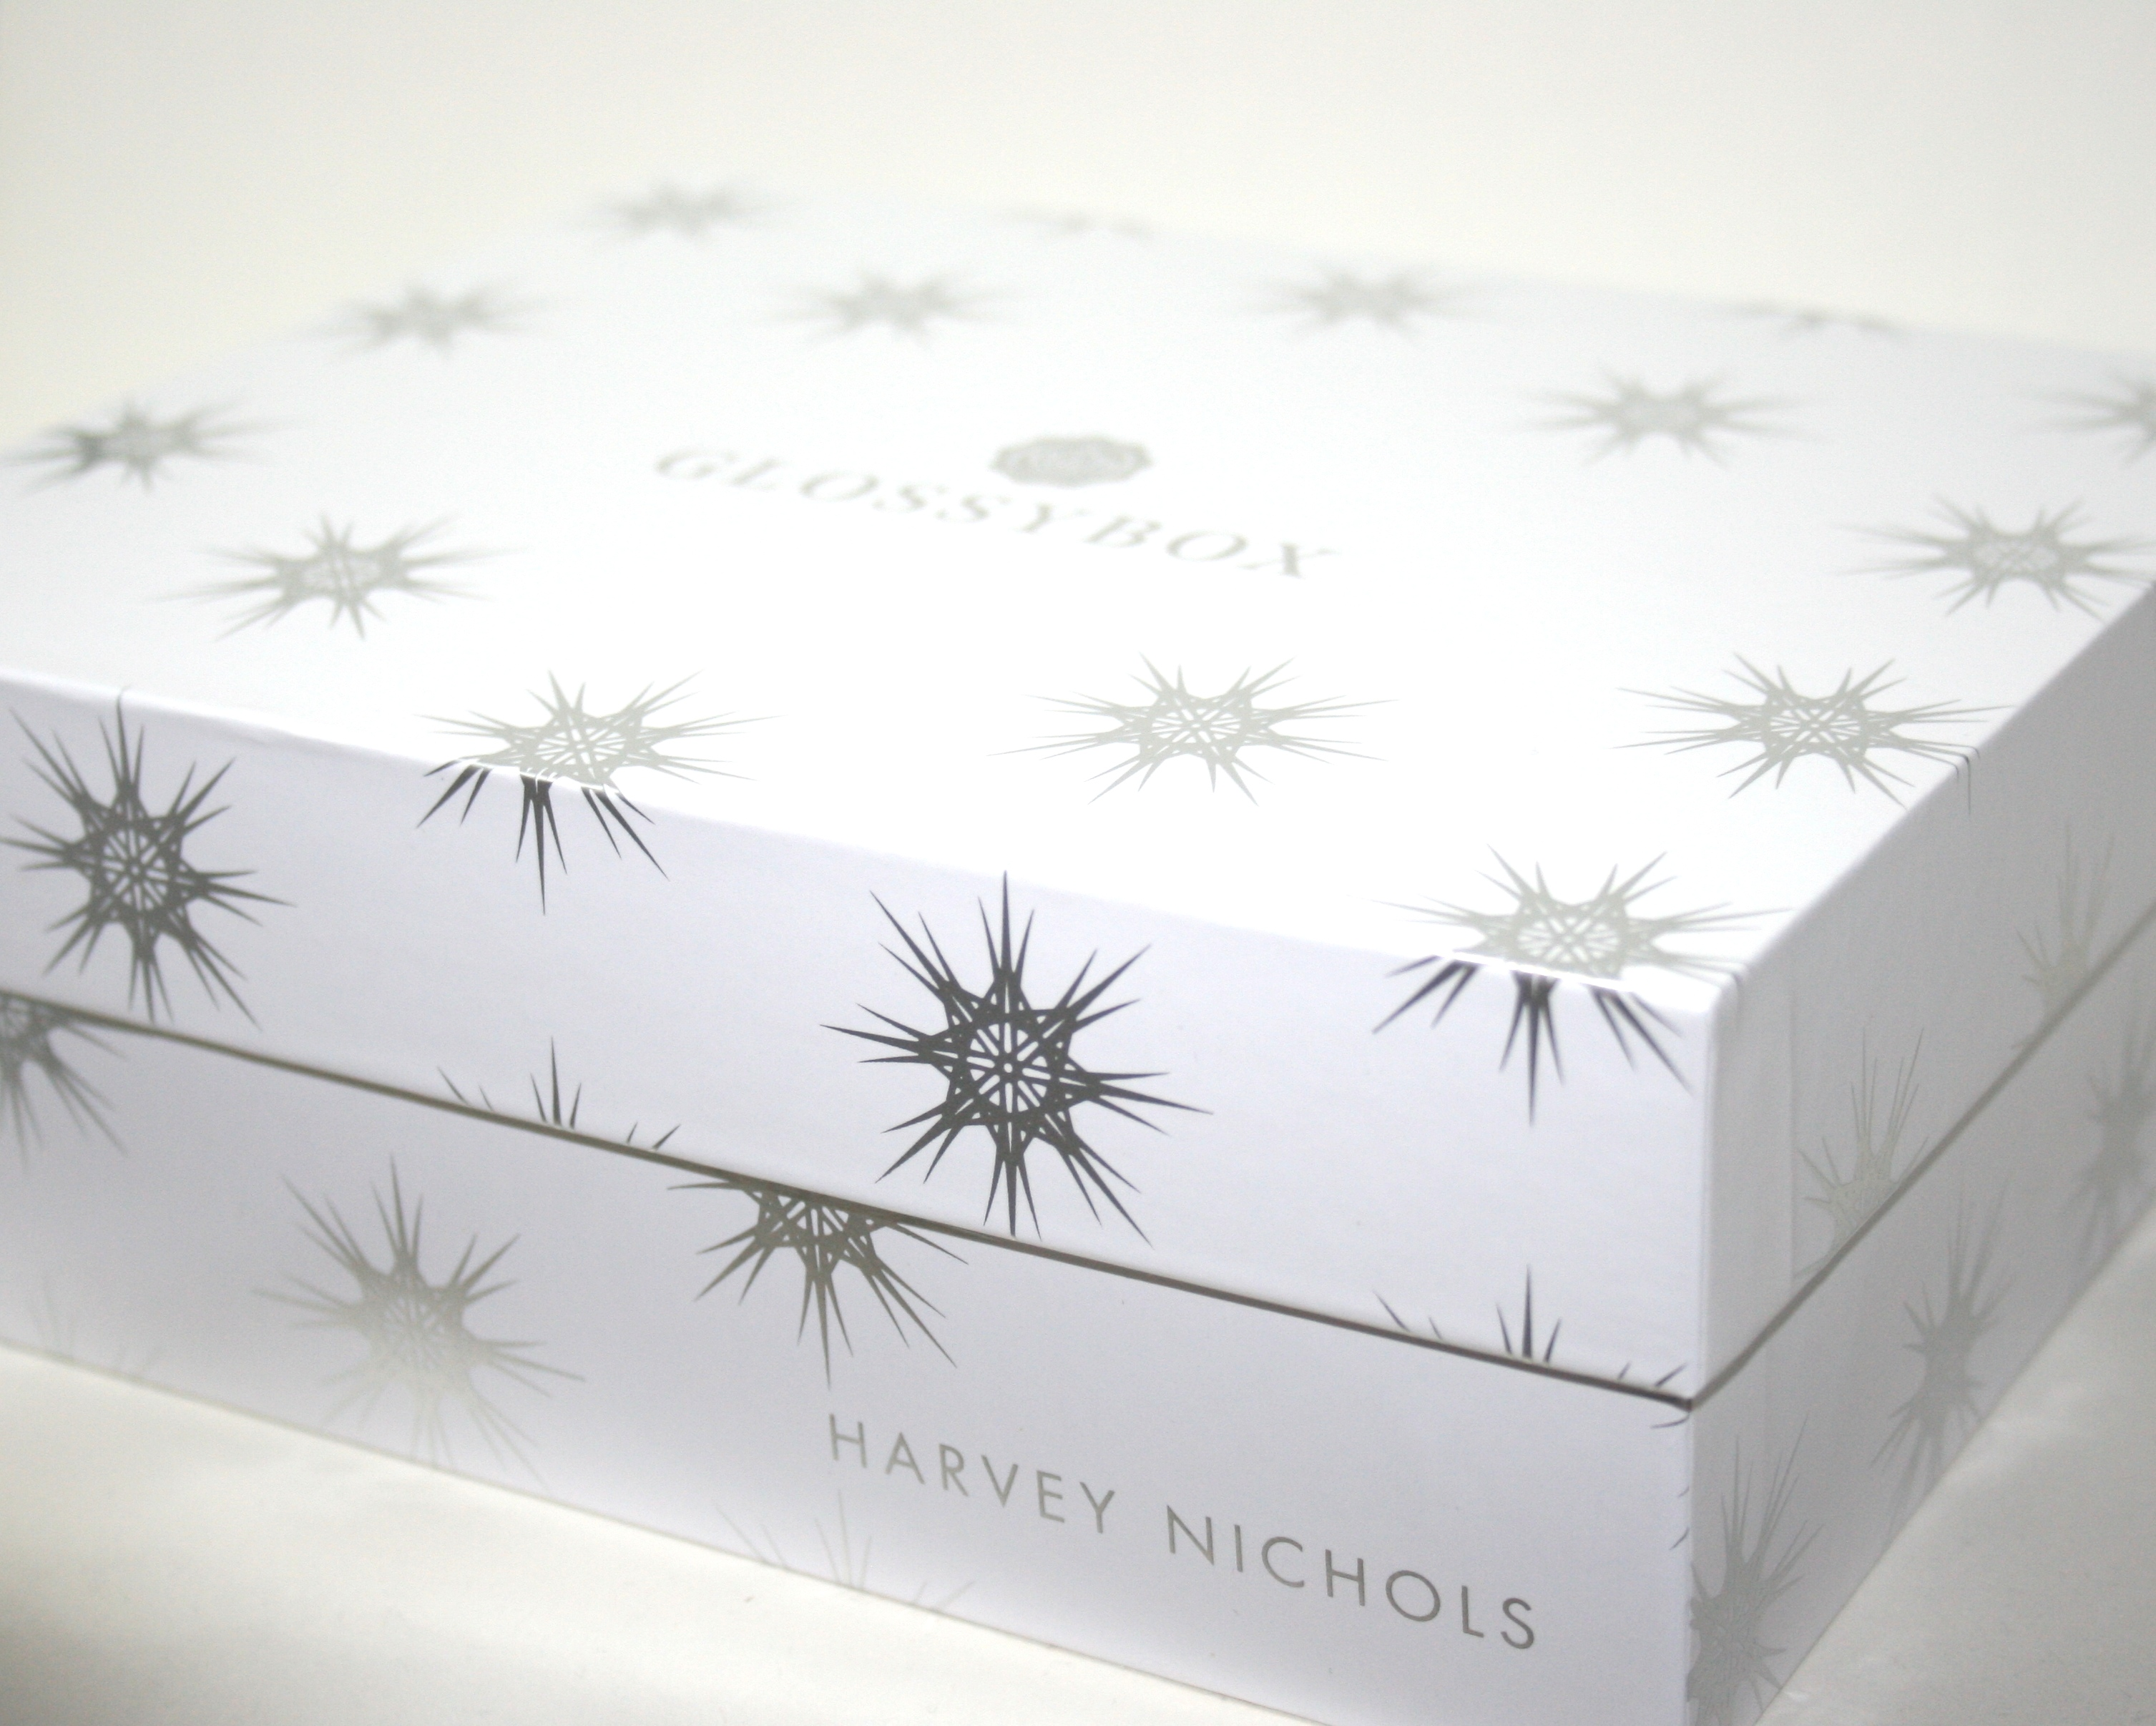 Glossybox / Harvey Nichols Christmas Box